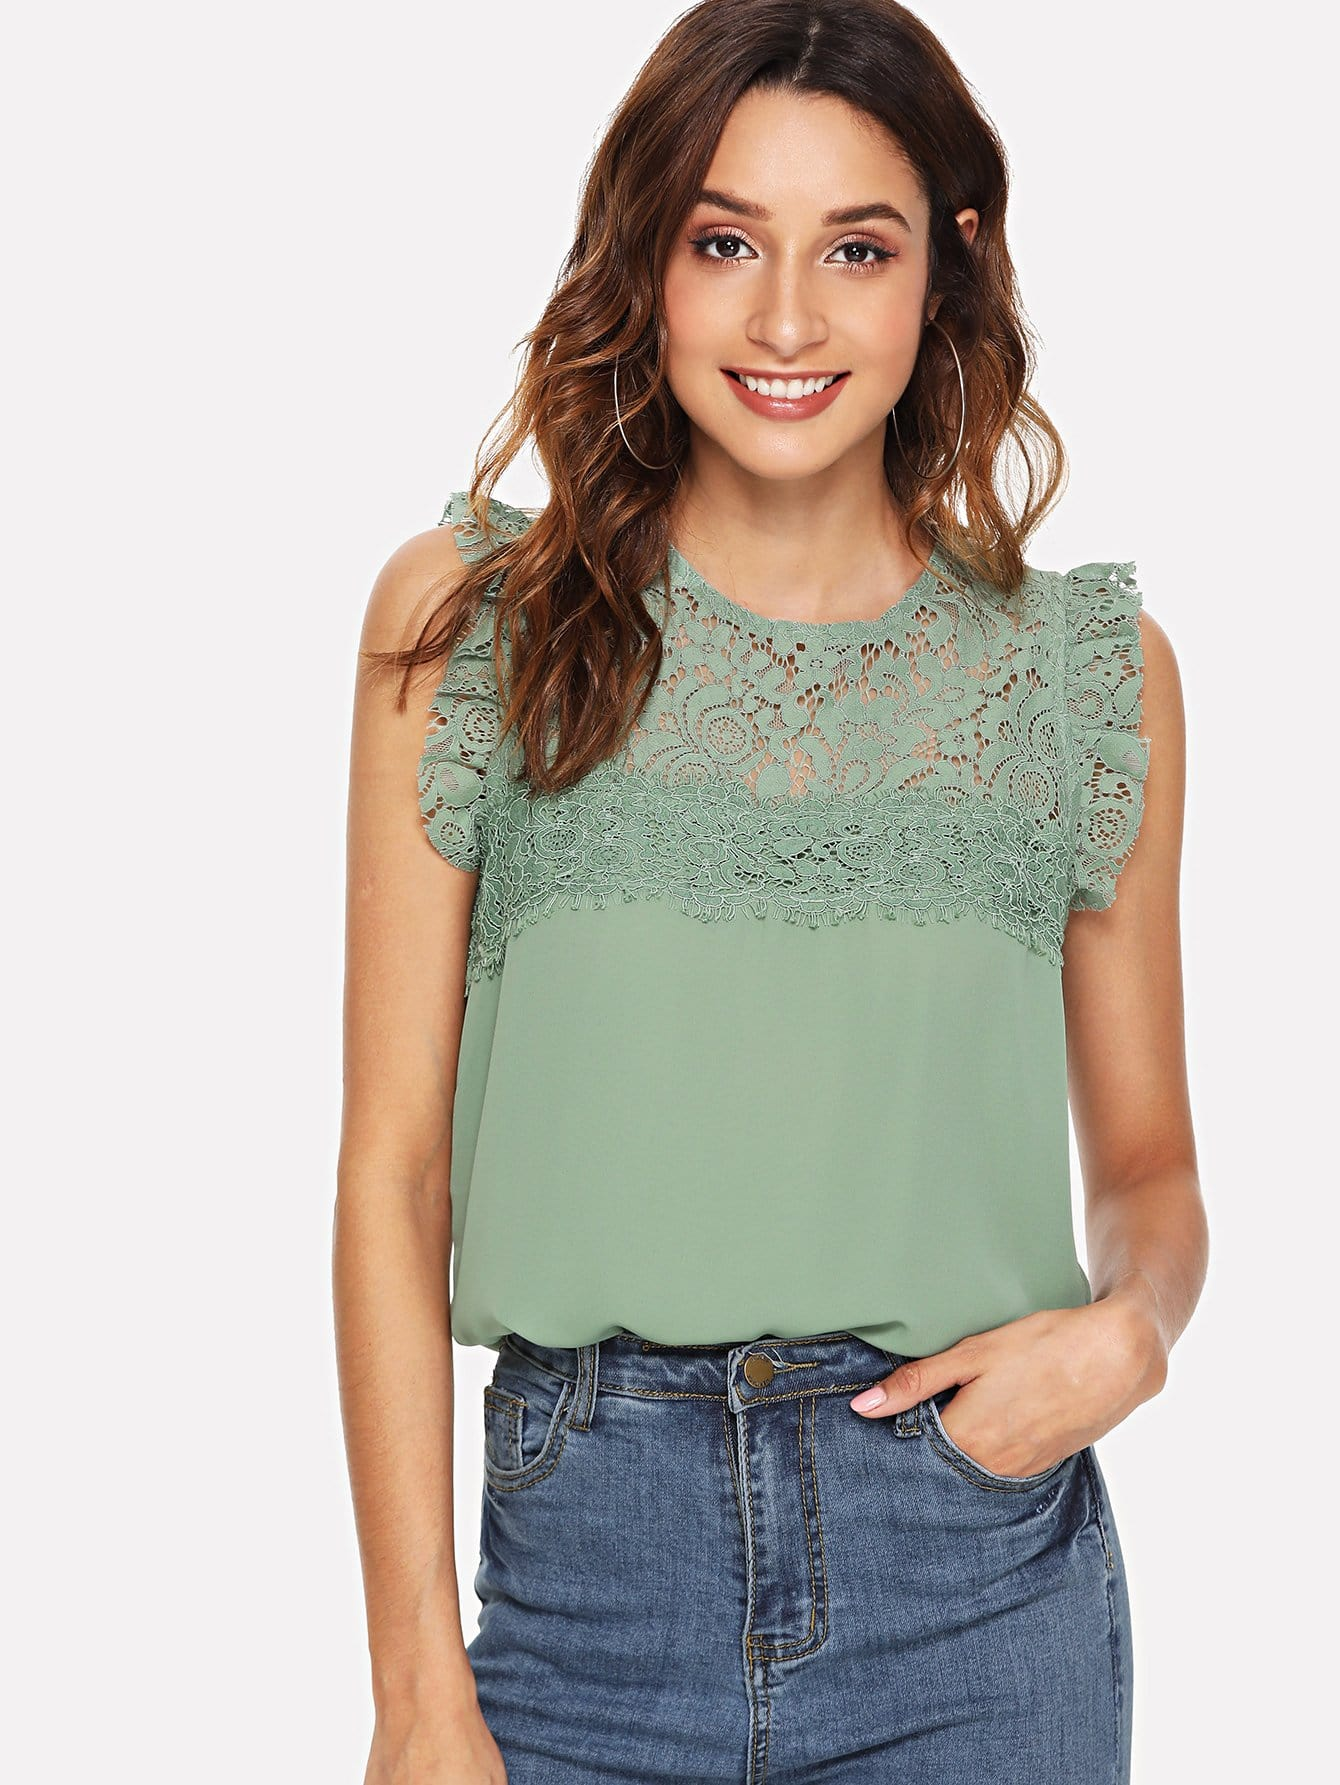 Floral Lace Yoke Frilled Top frilled collar lace yoke sleeveless top